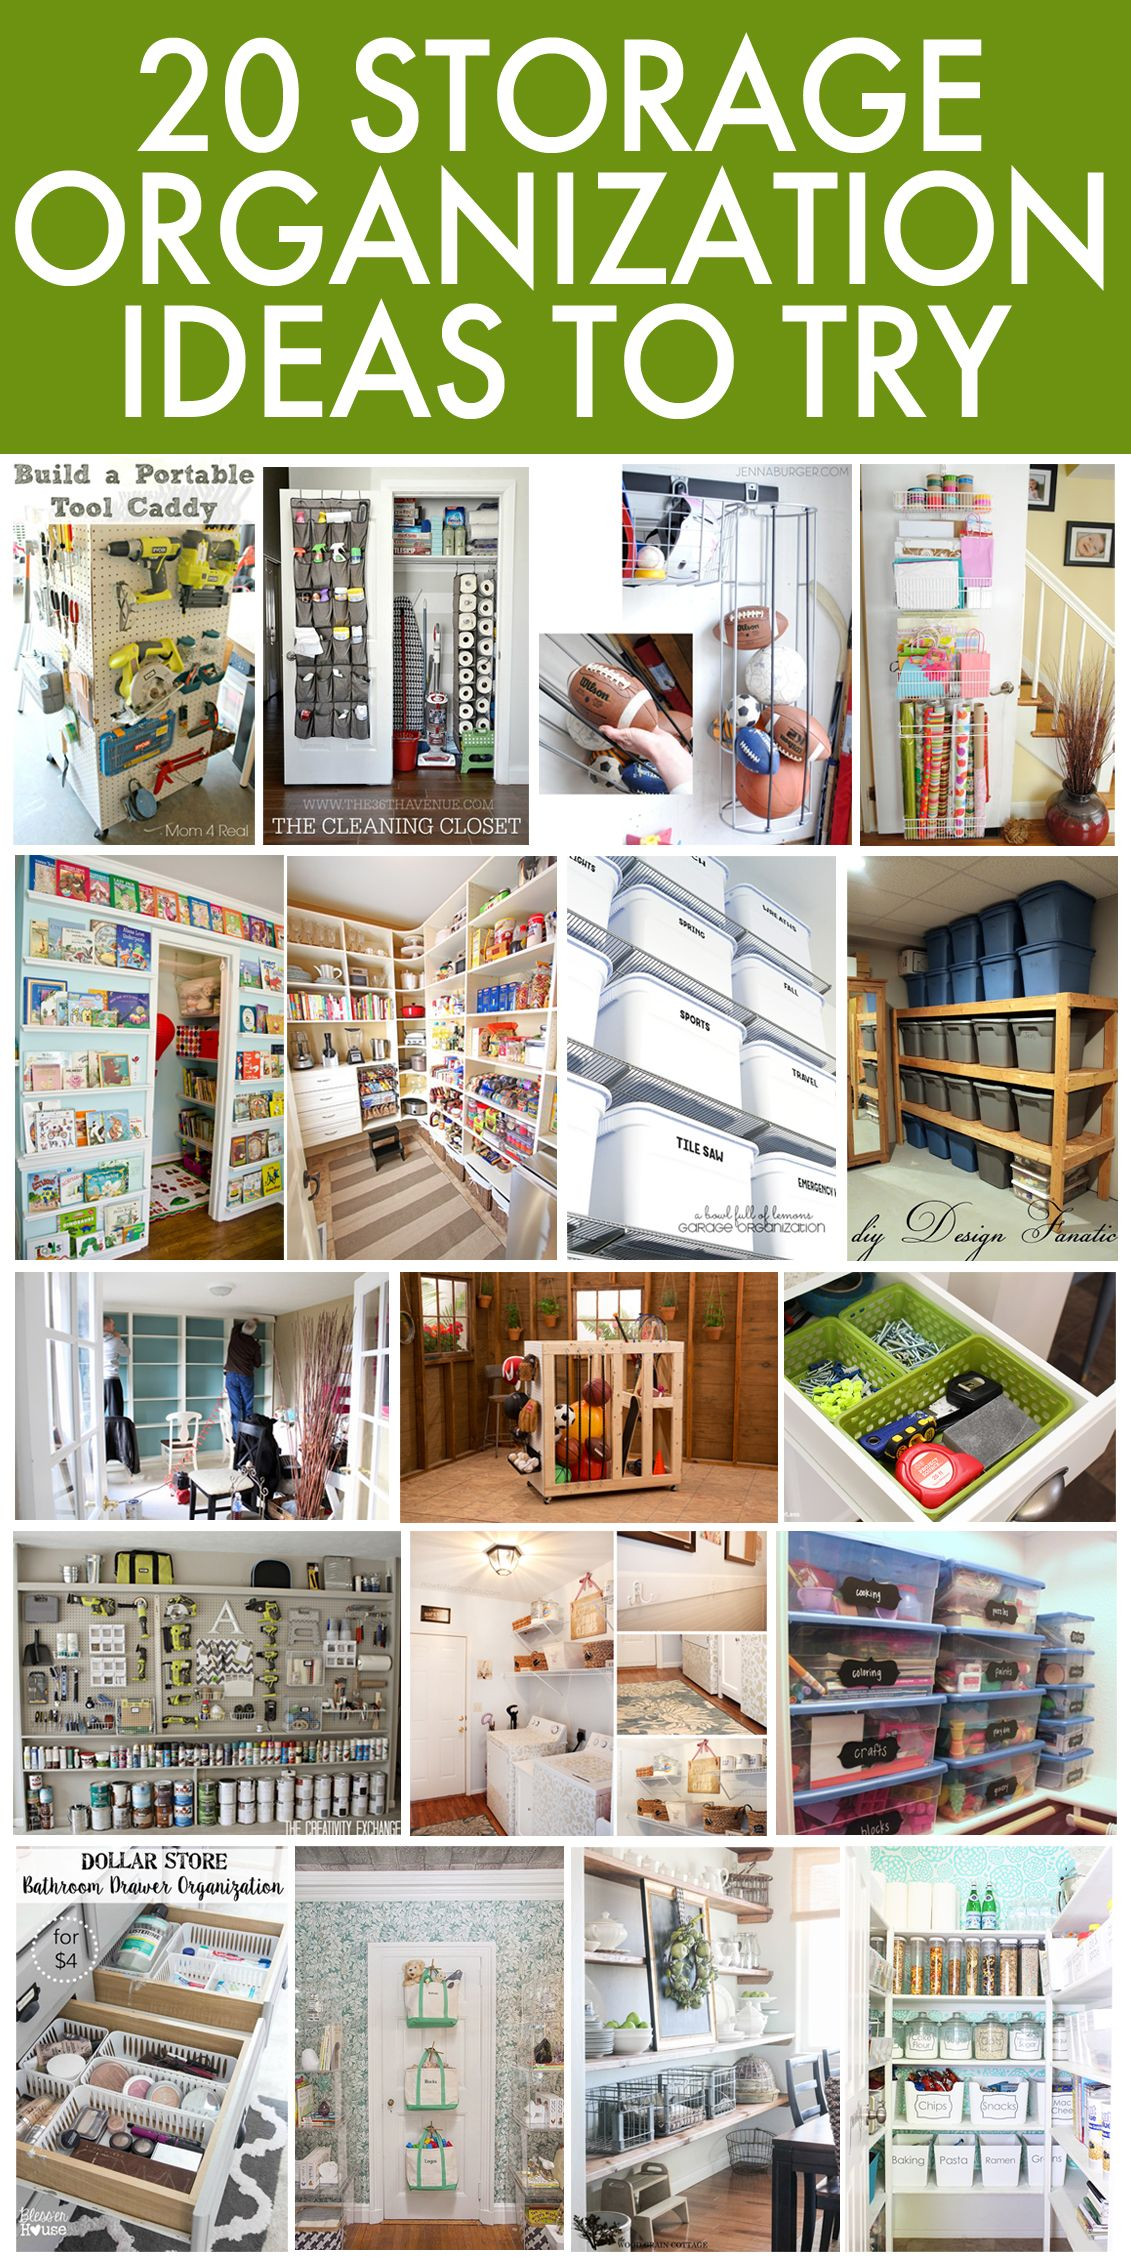 Organization Ideas 20 Easy Storage For Your Home Home Organization Organization Hacks Organization